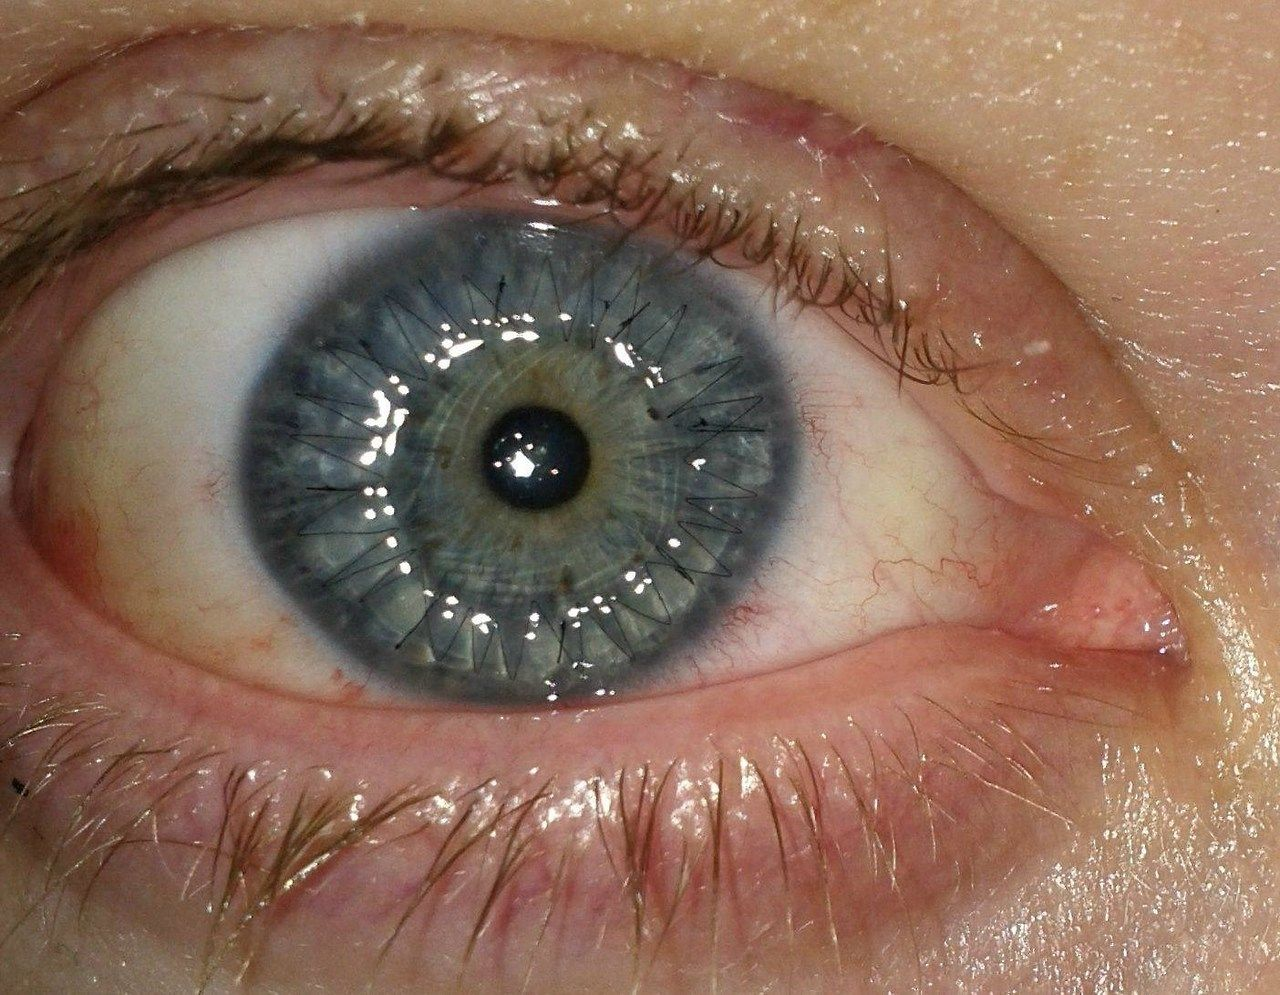 Corneal transplant with visible sutures Implants, Corneal